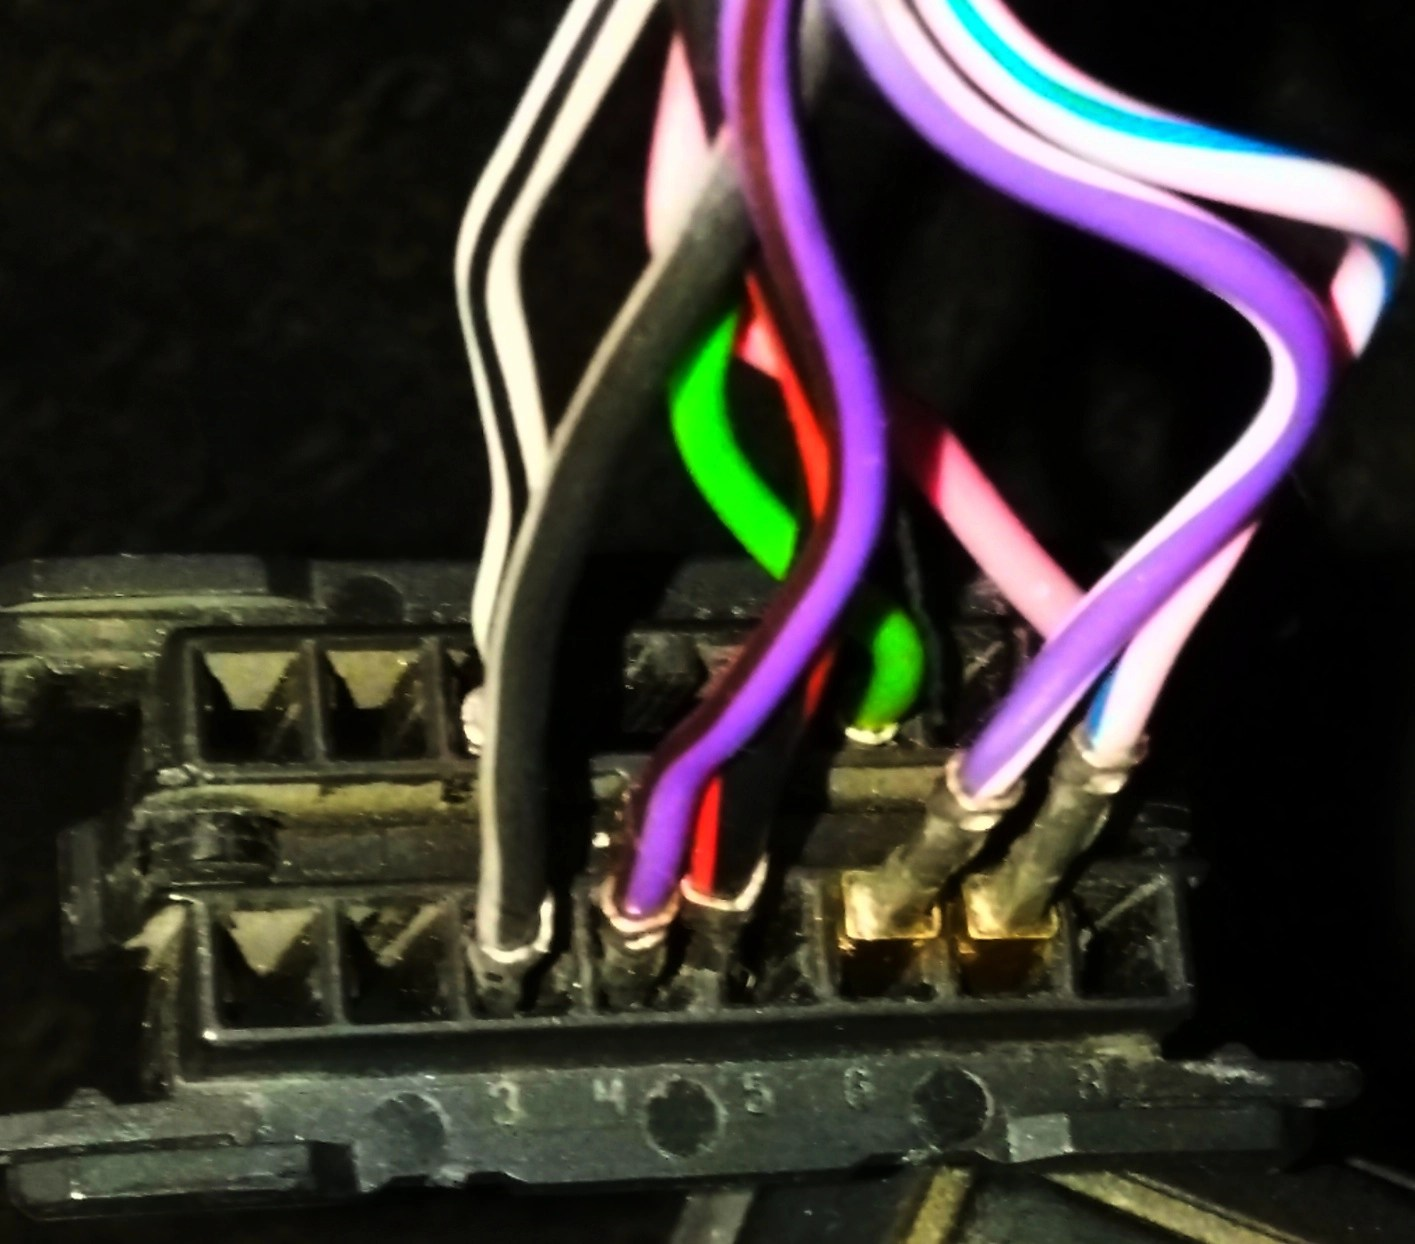 hight resolution of here s my connection seeking diagram of obd2 port plug wiring img 20180403 143147 jpg